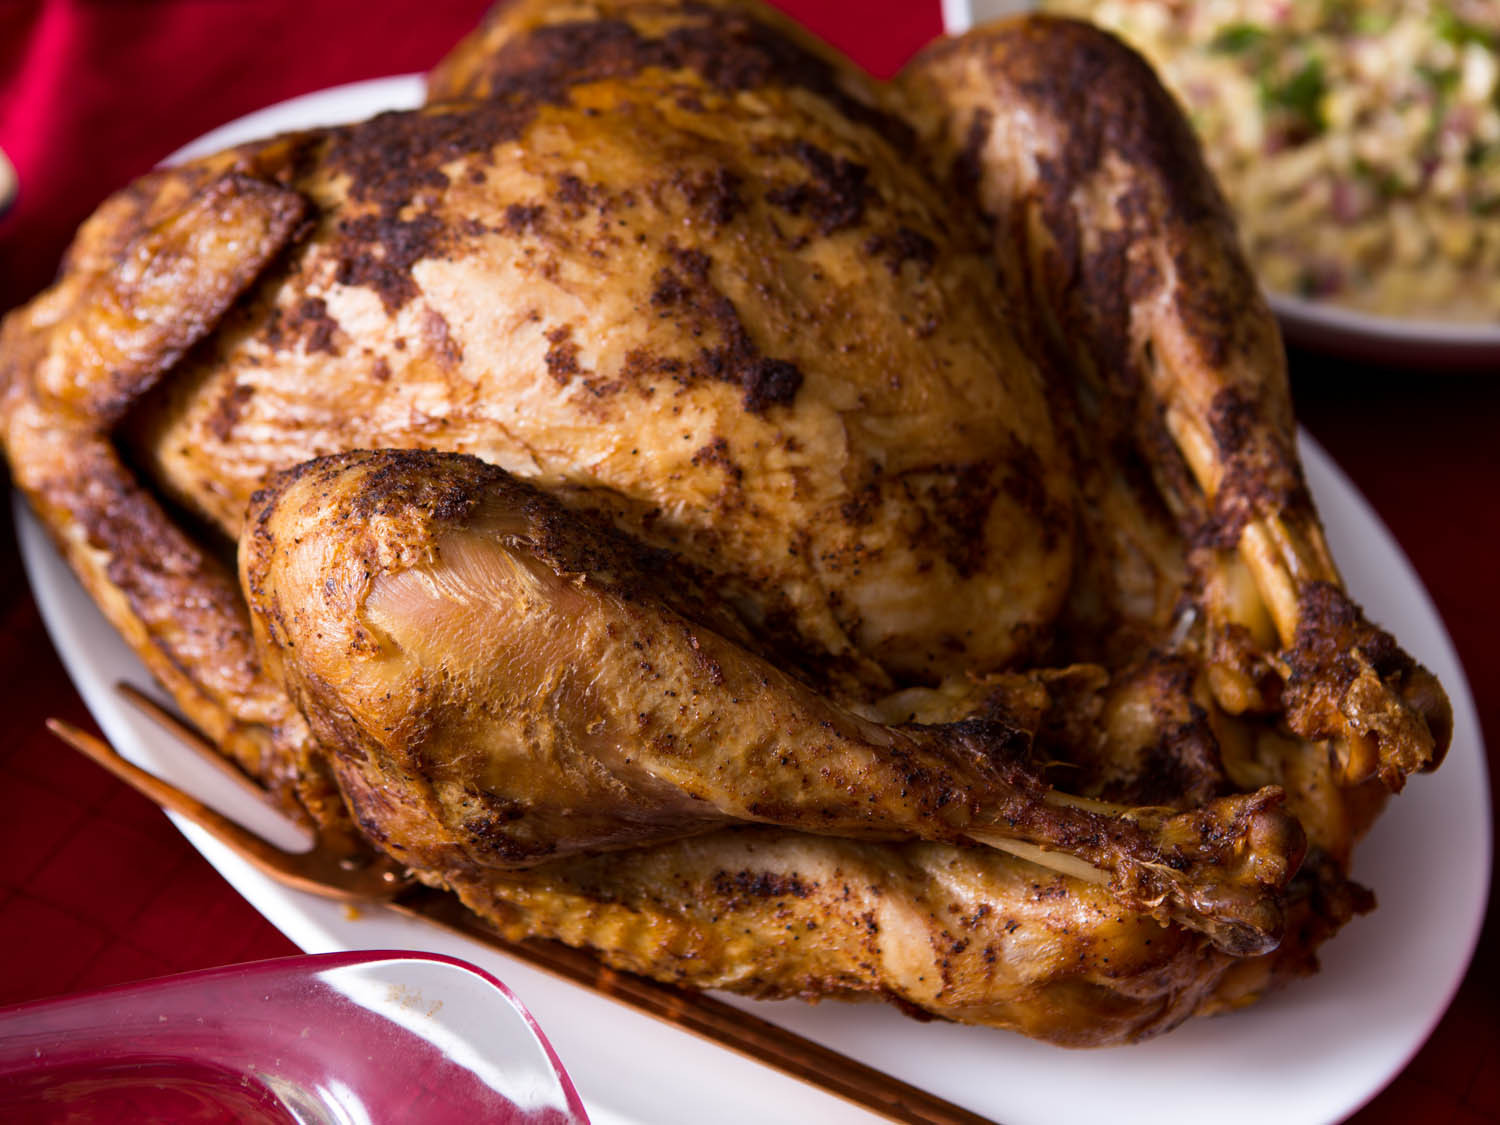 Order Fried Turkey For Thanksgiving  A Fast Food Thanksgiving That s Actually Delicious